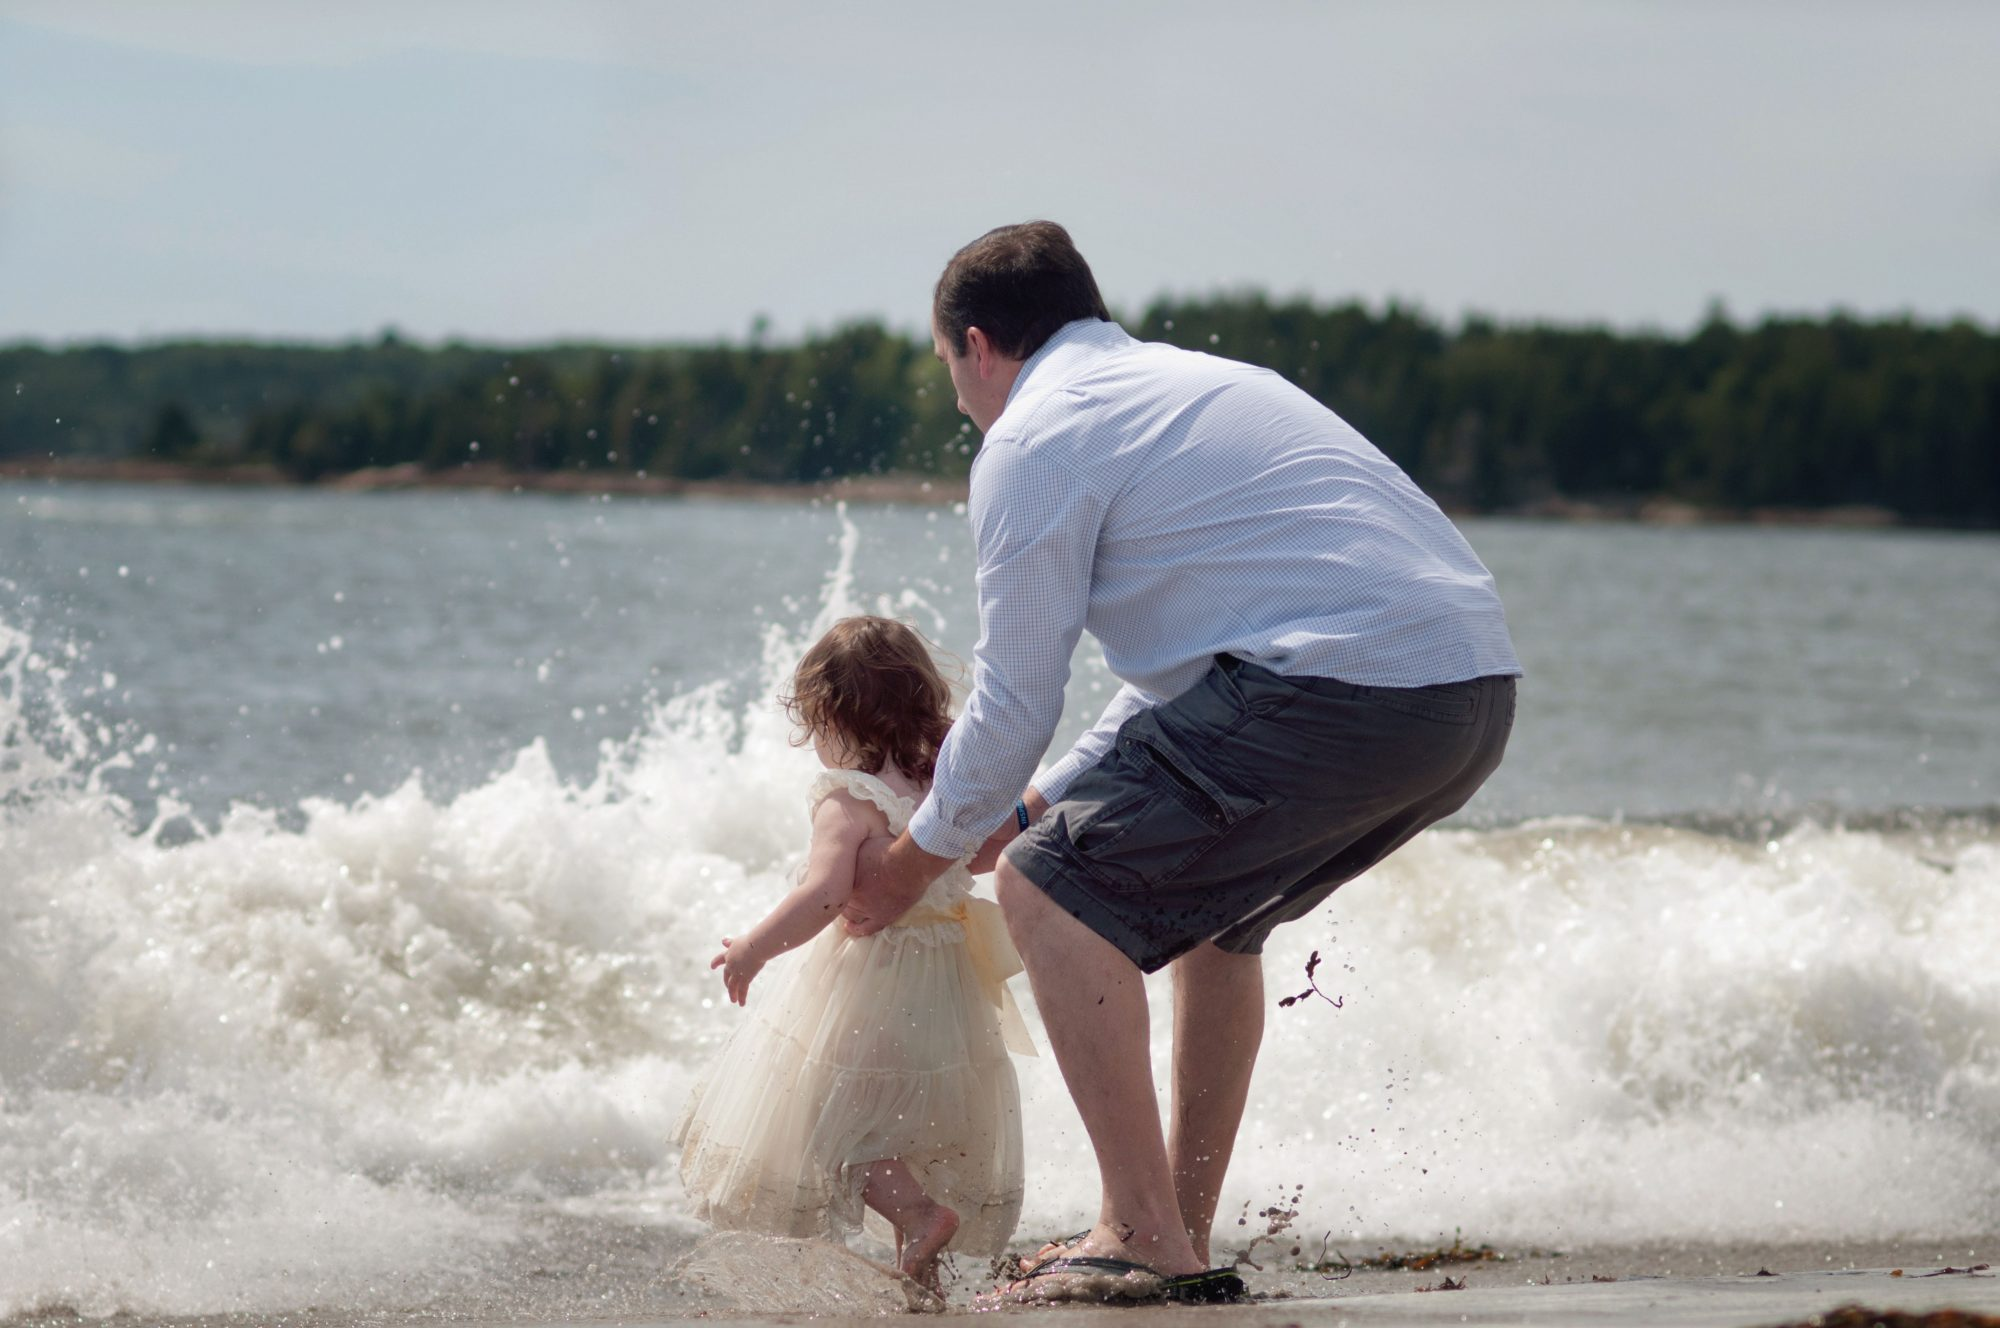 Dad making sure his daughter doesn't get too close to the crashing waves.